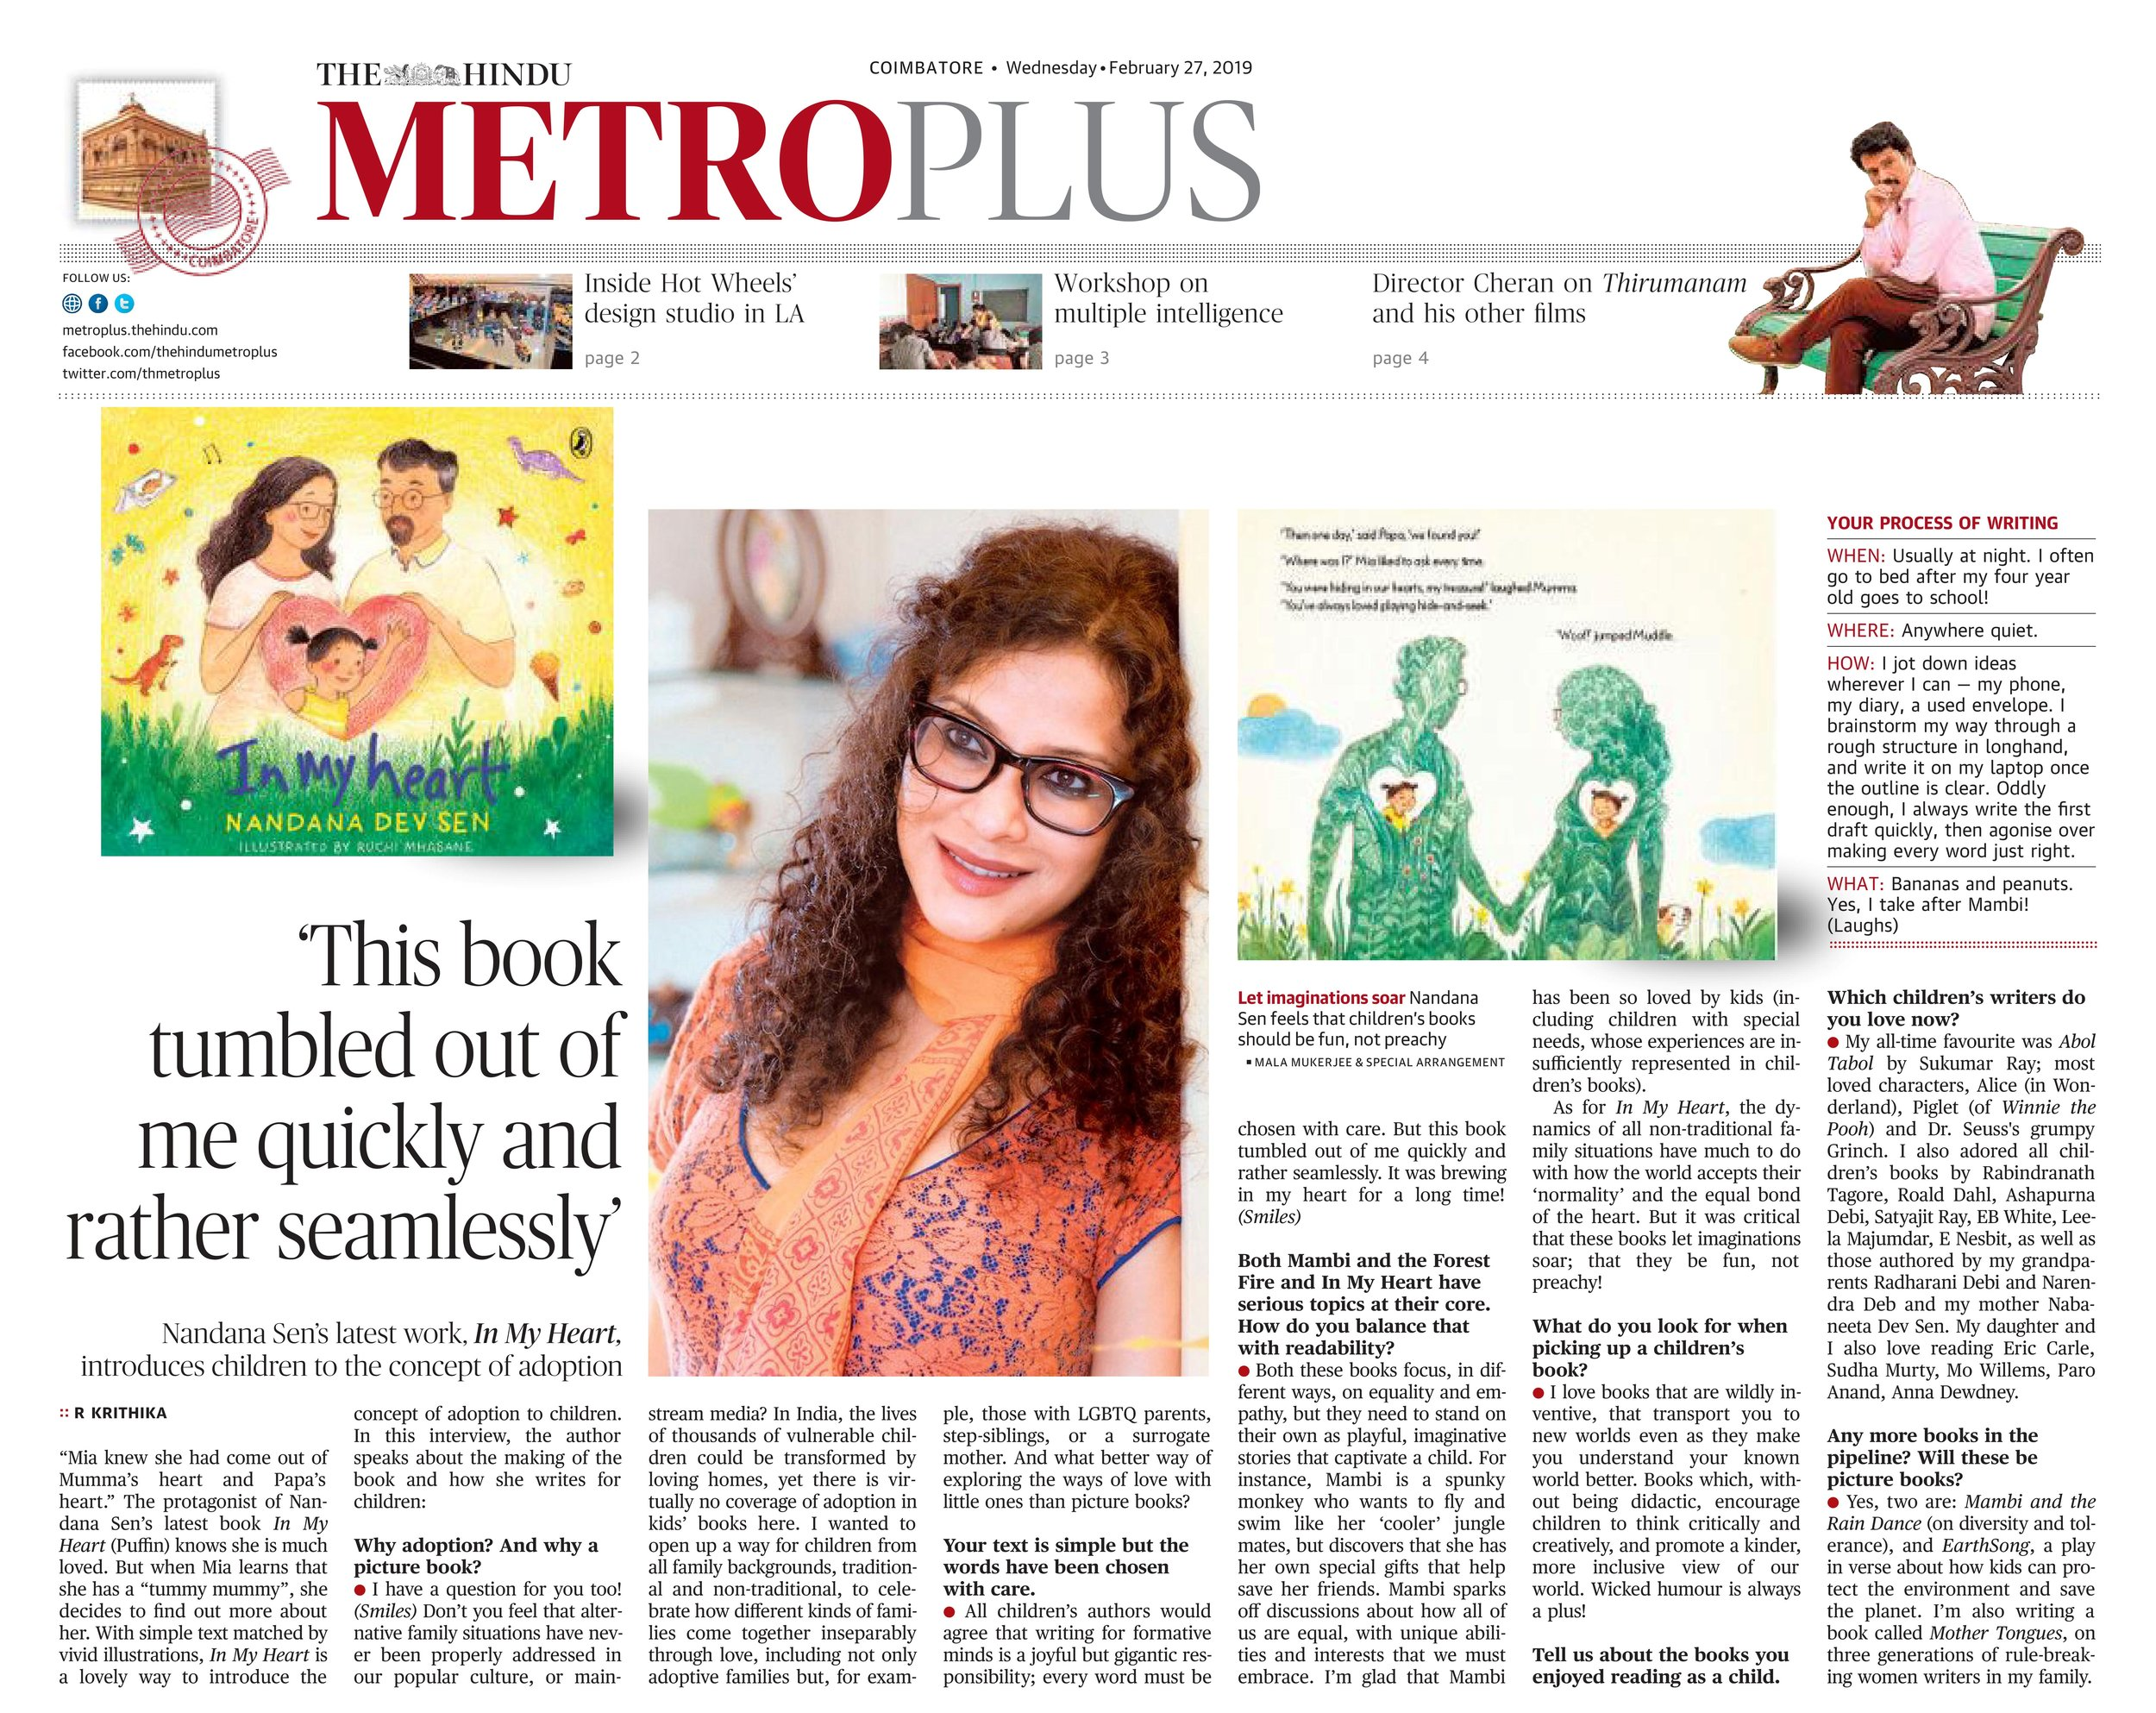 The Hindu Metro Press -  click for story  February 27, 2019